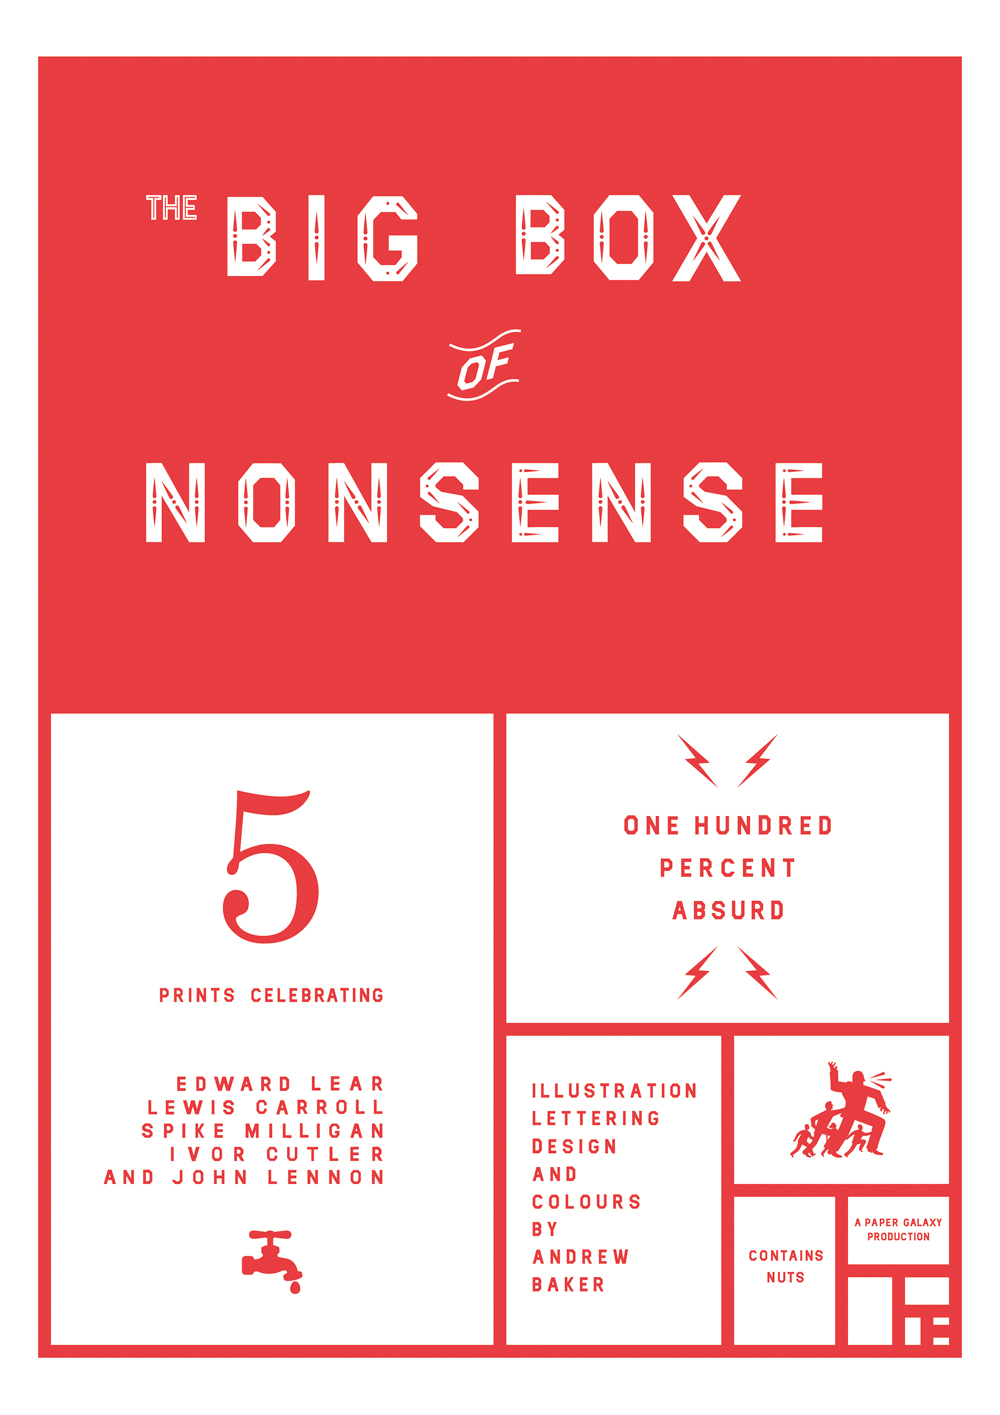 Big Box of Nonsense, by Andrew Baker